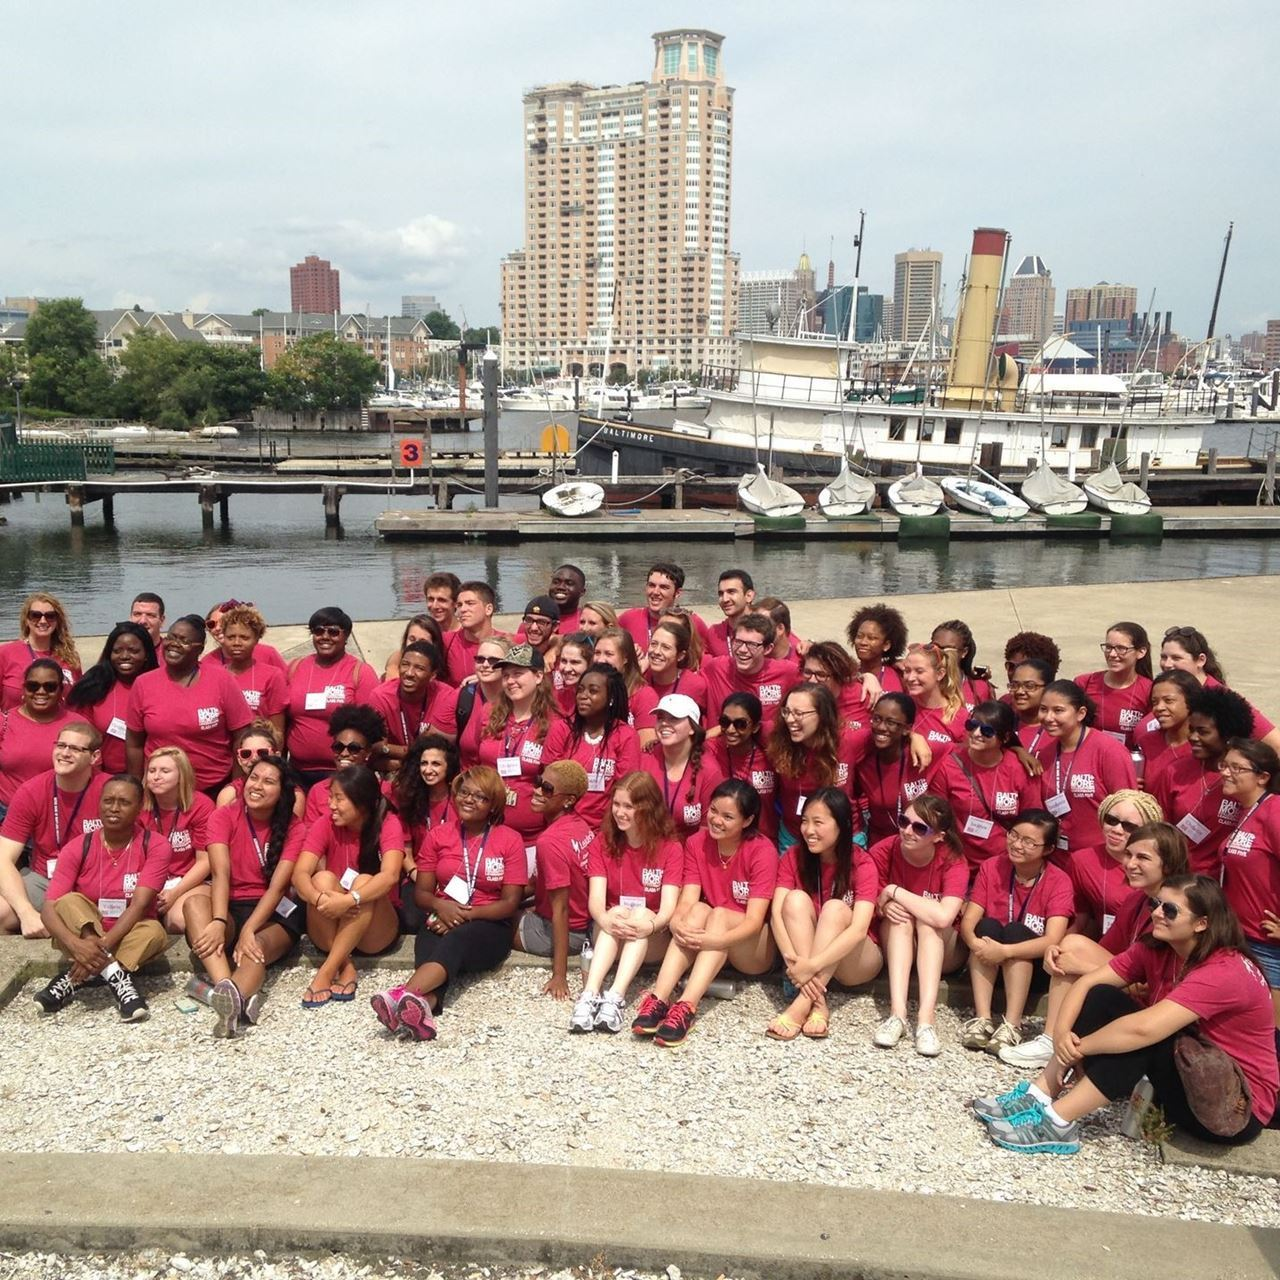 Baltimore Collegetown participates in a teambuilding event